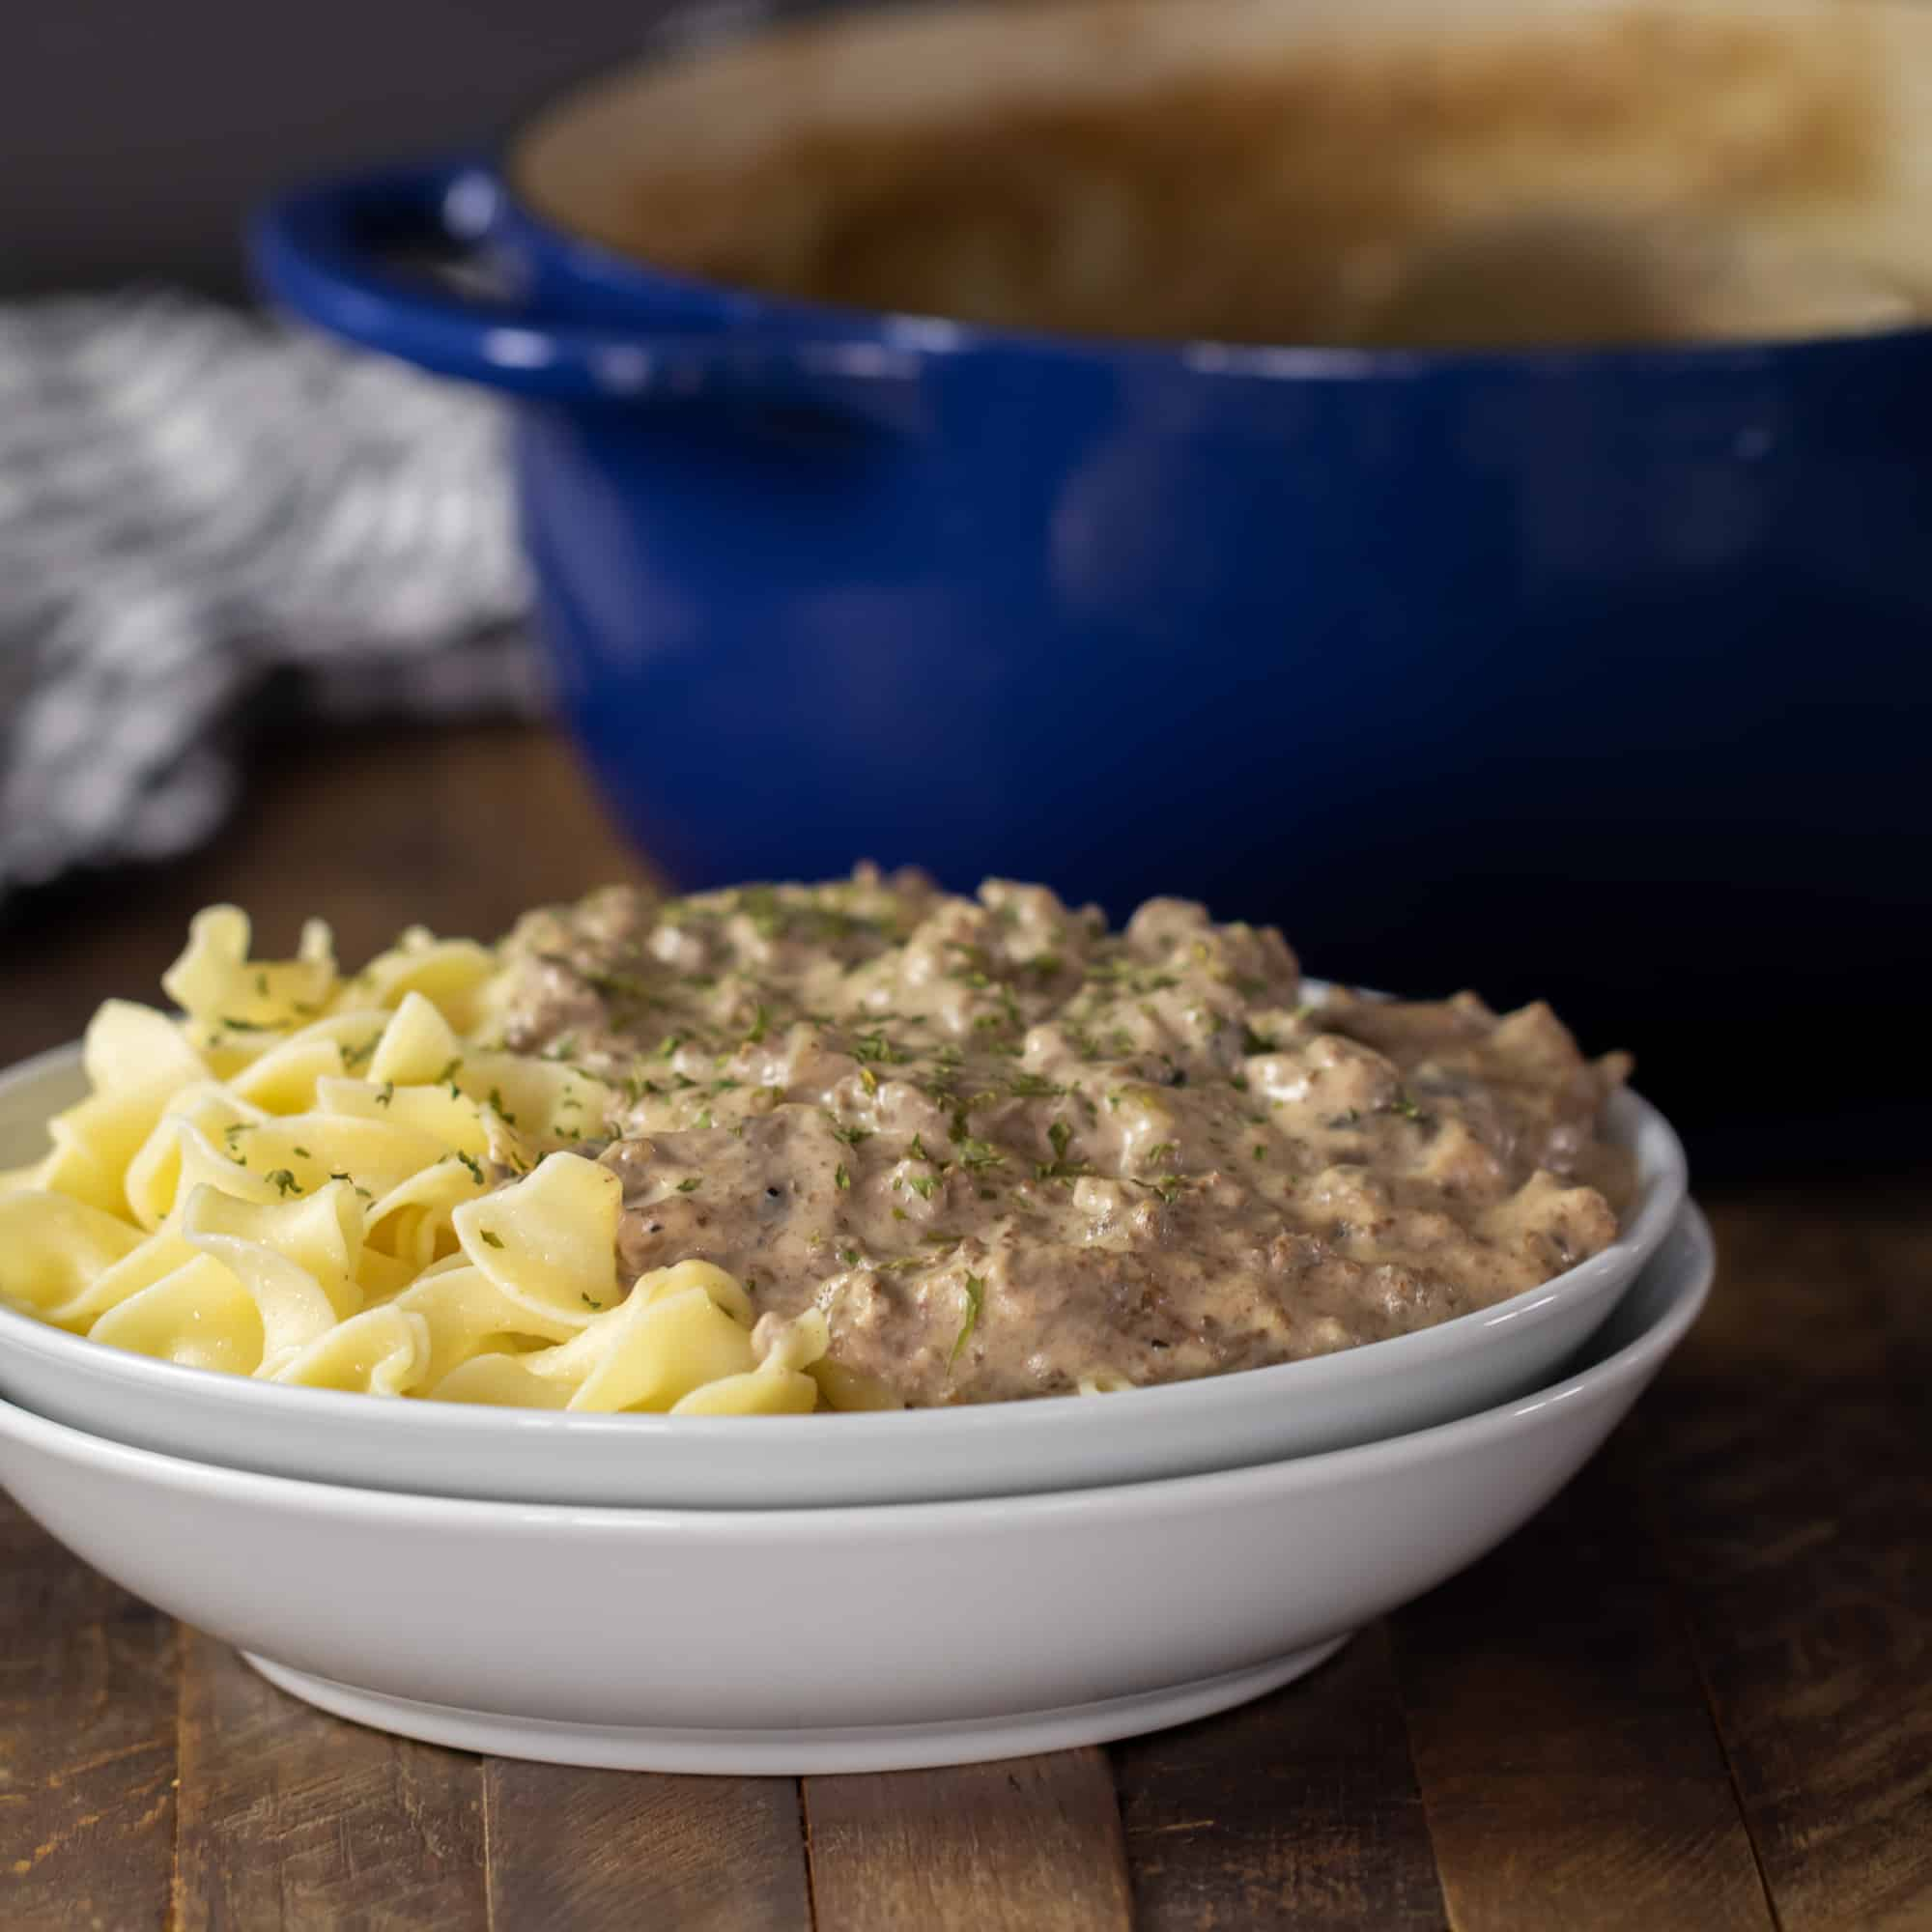 A bowl of beef stroganoff with egg noodles in front of a dutch oven.